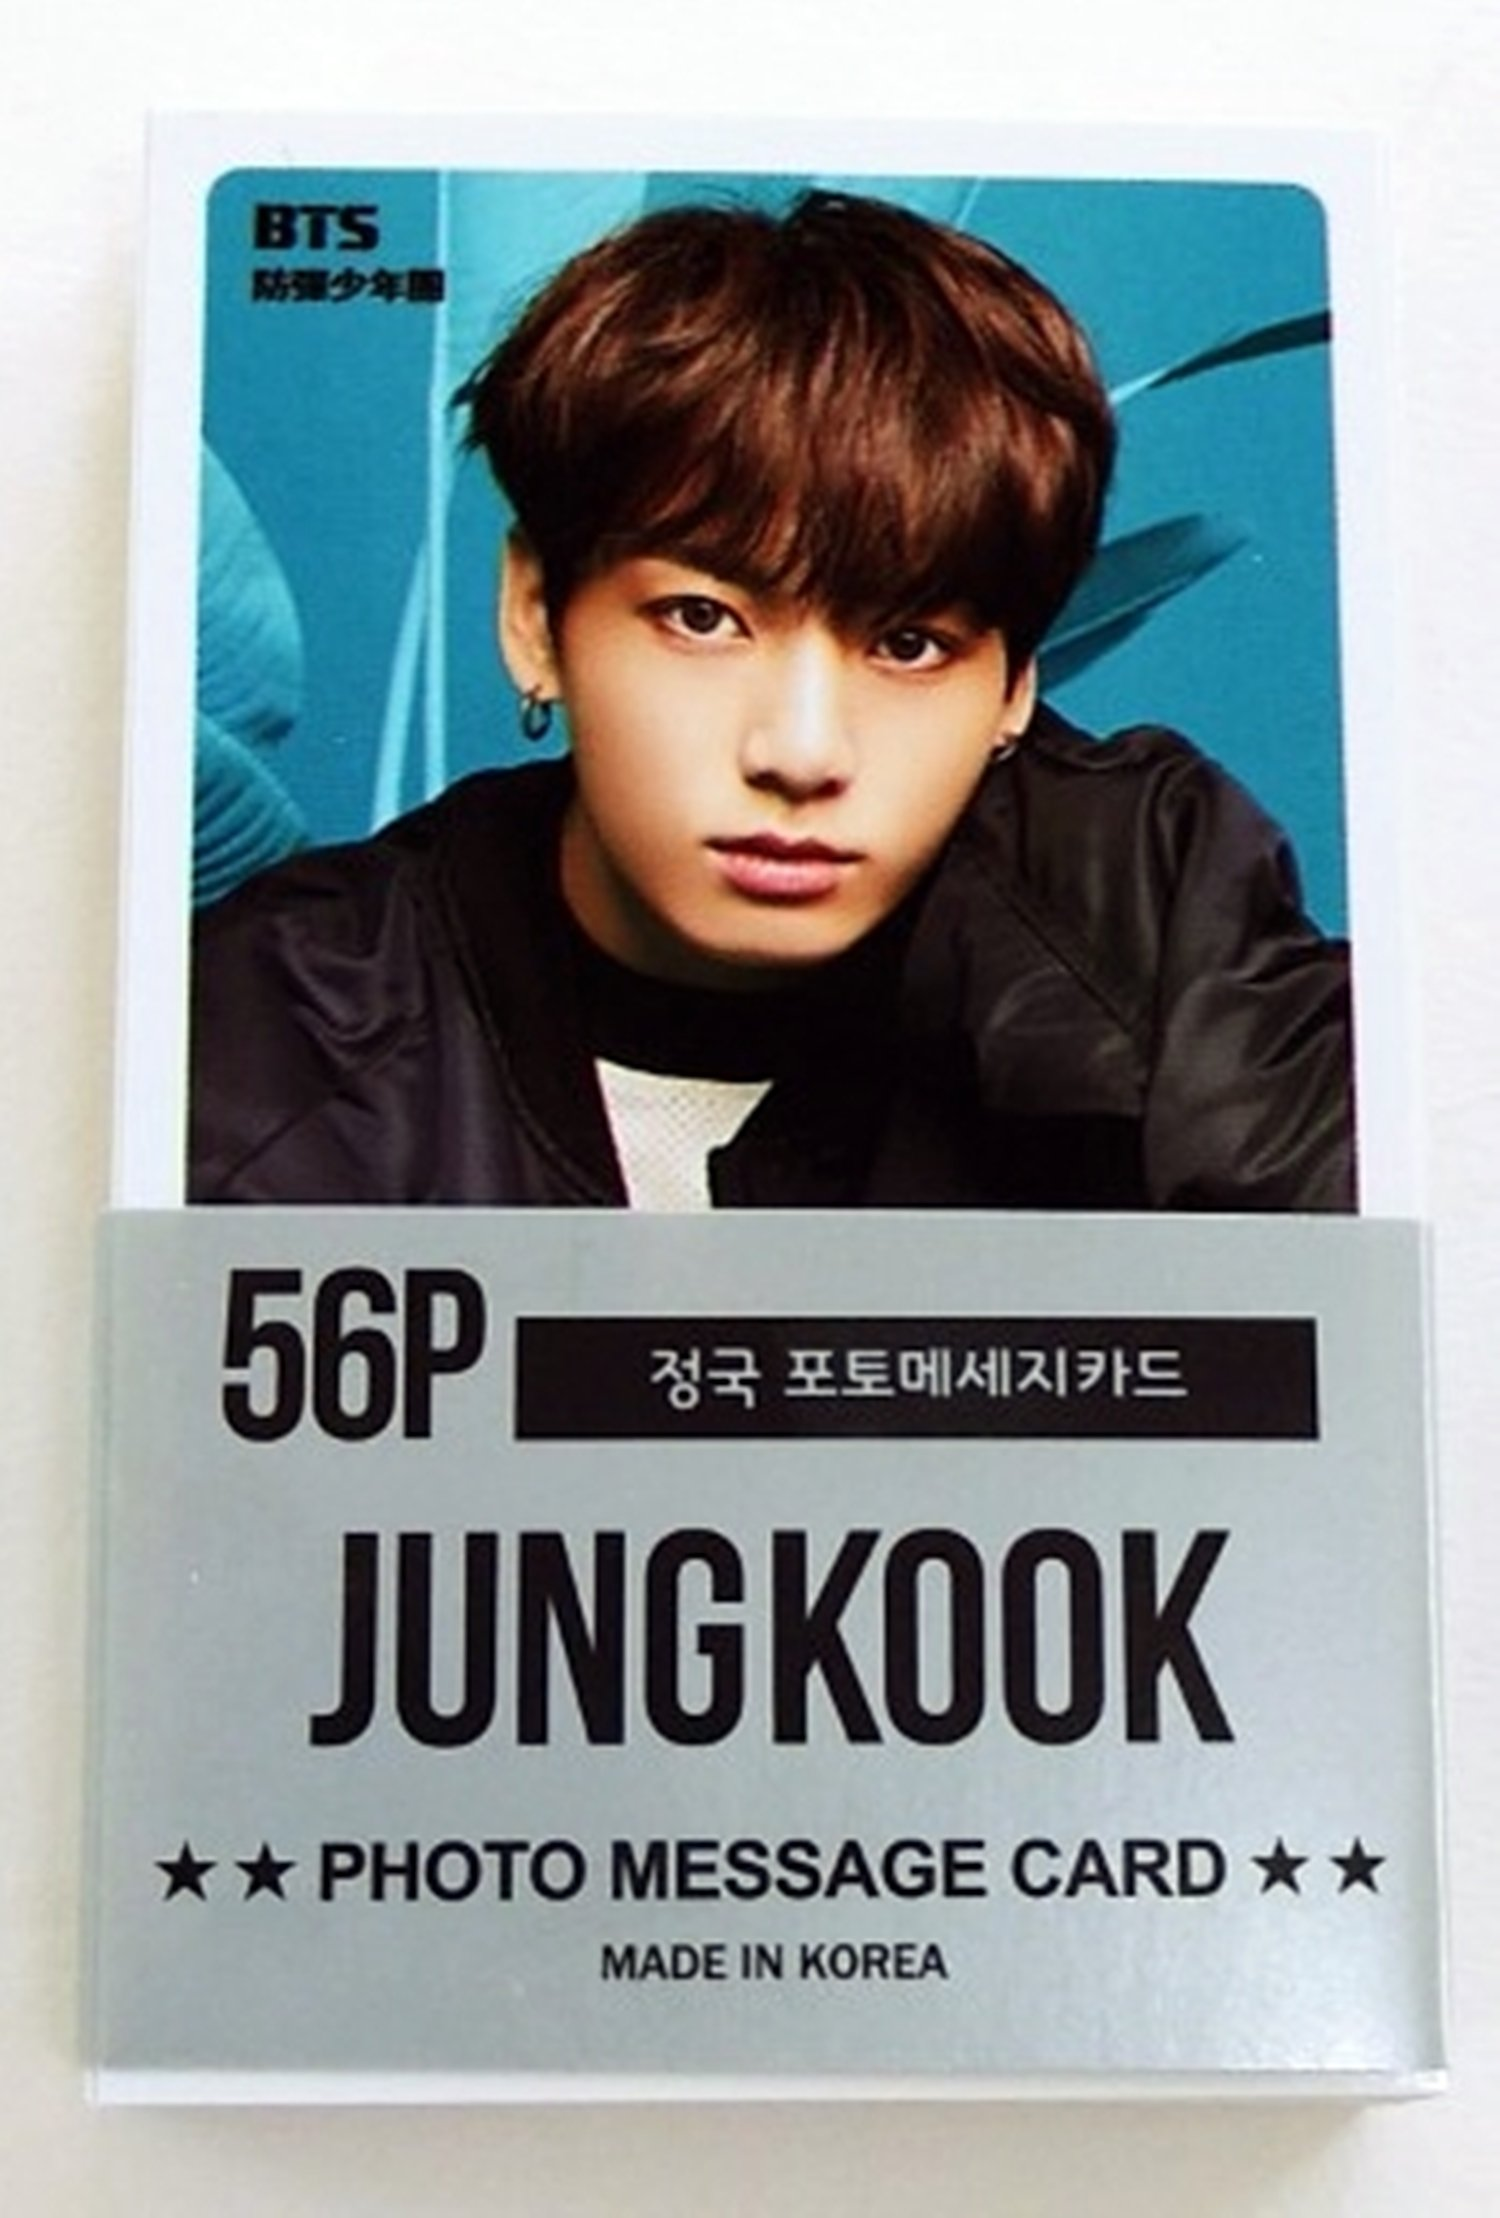 Bts - Jungkook [photocards Set]